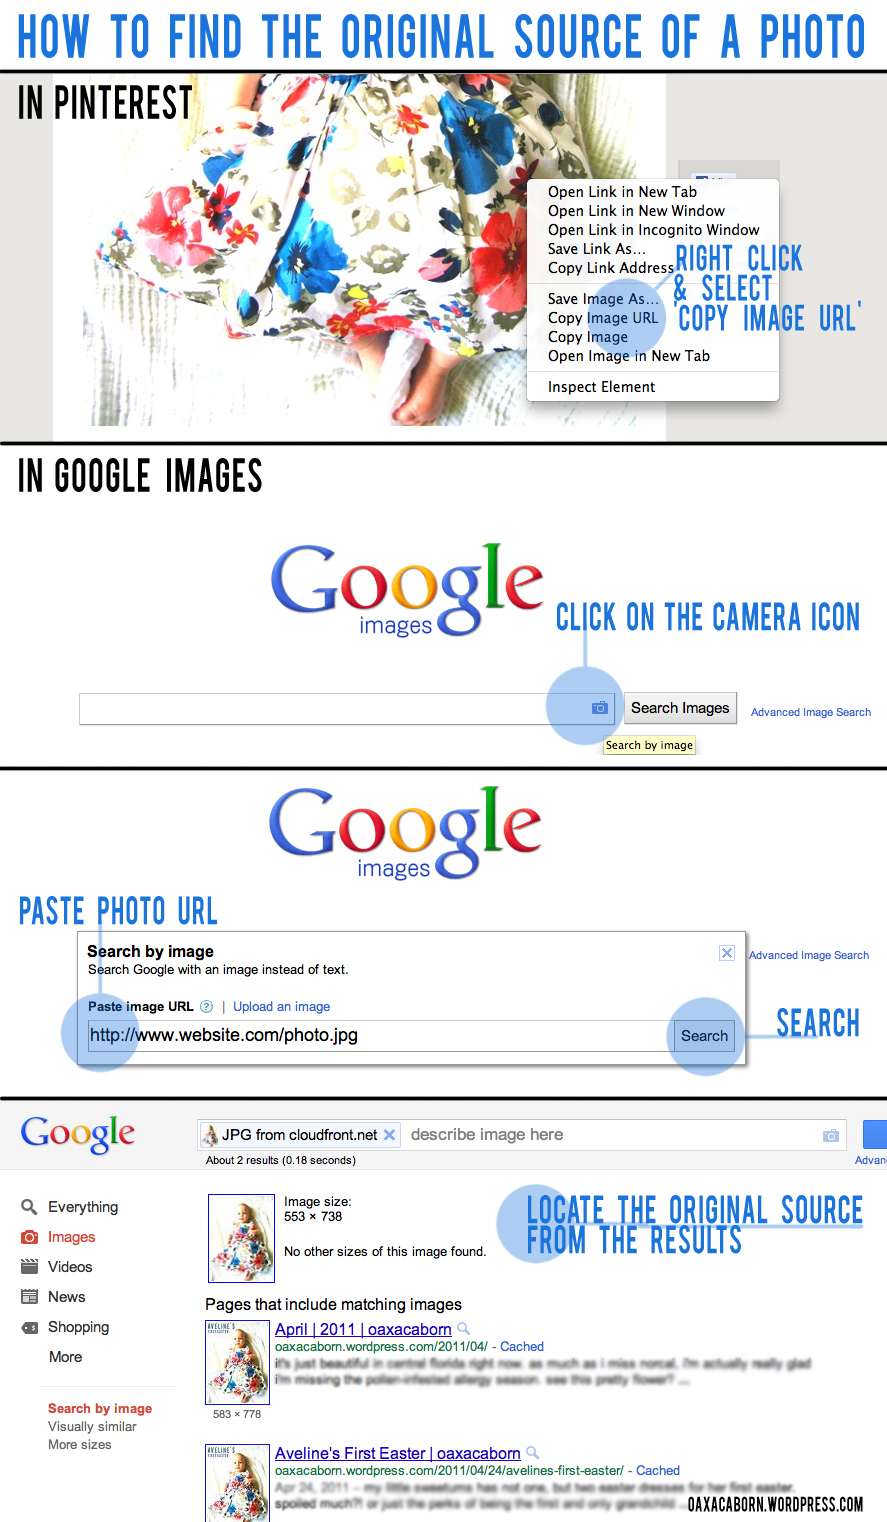 Source Pinterest: How To Use Google Images To Find The Original Source Of An